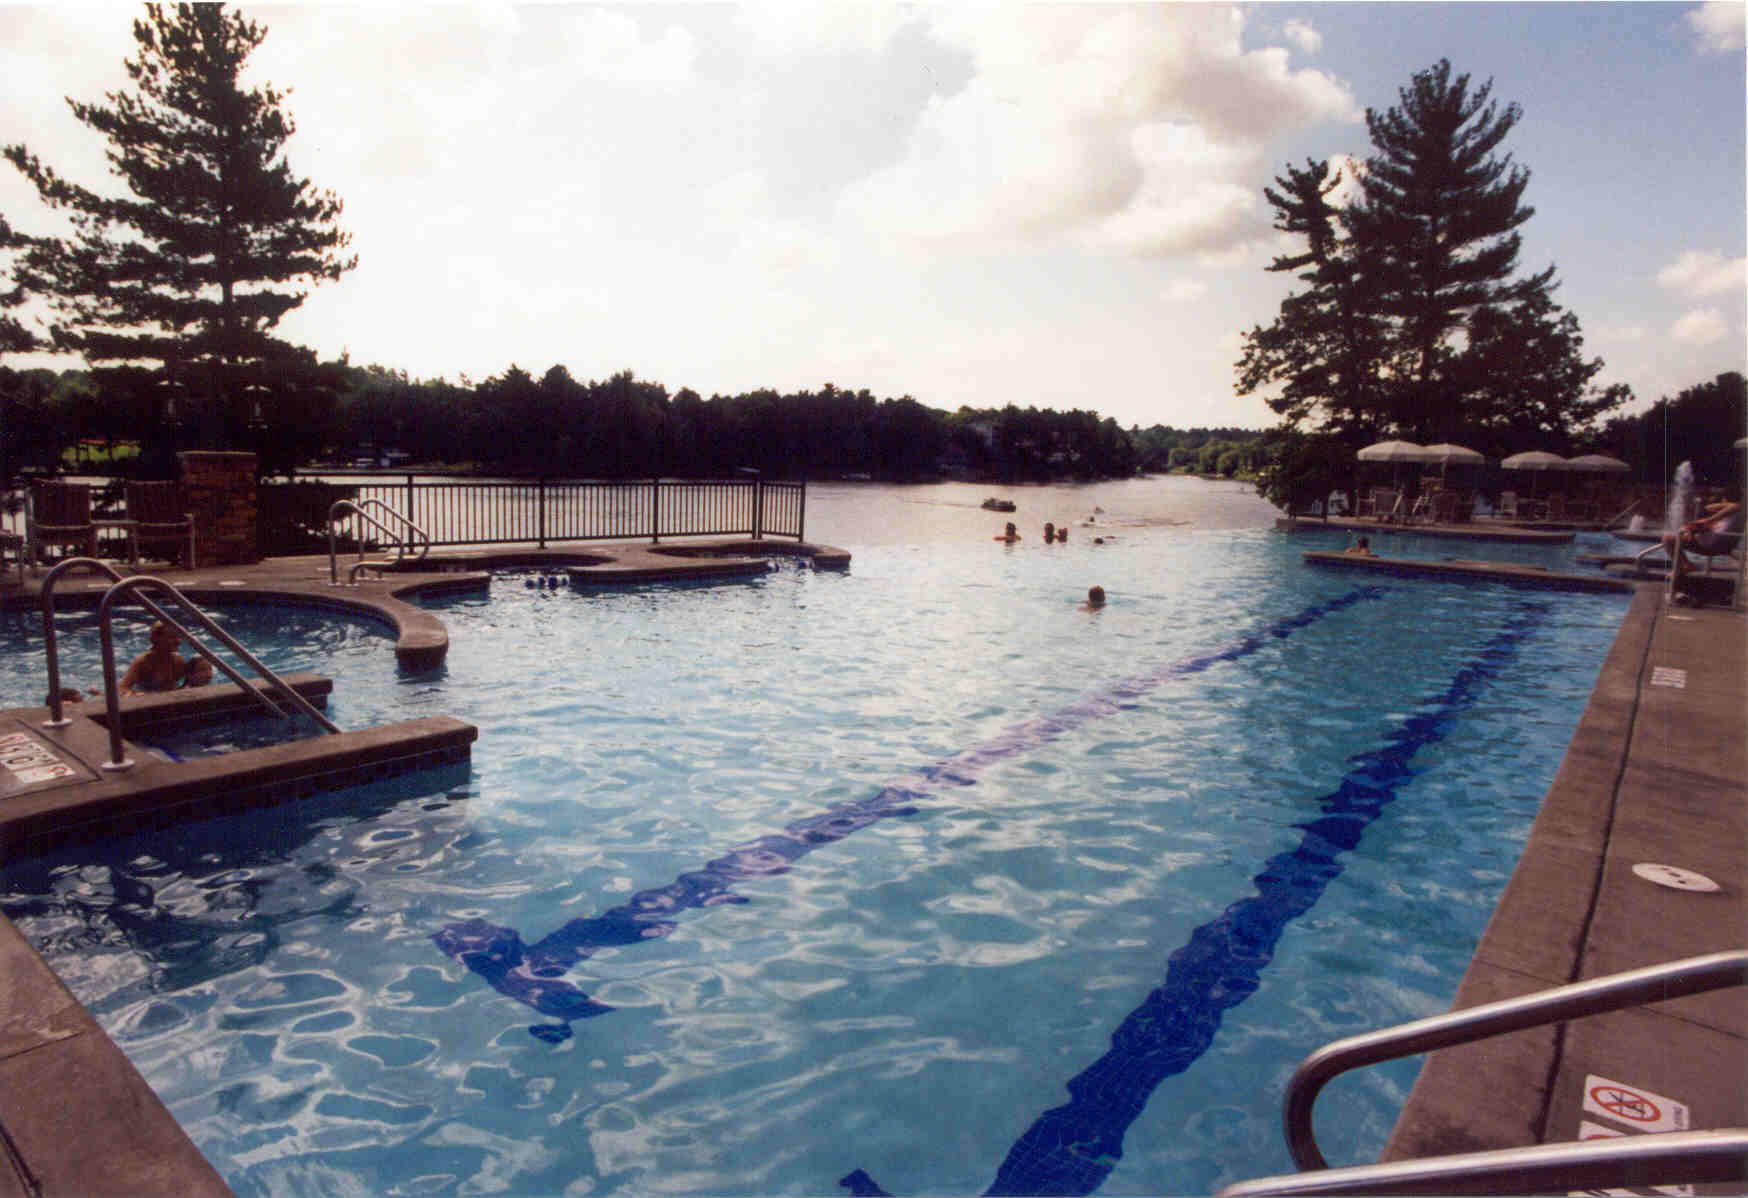 Outdoor lap pool area at the Wilderness on the Lake in Lake Delton, WI